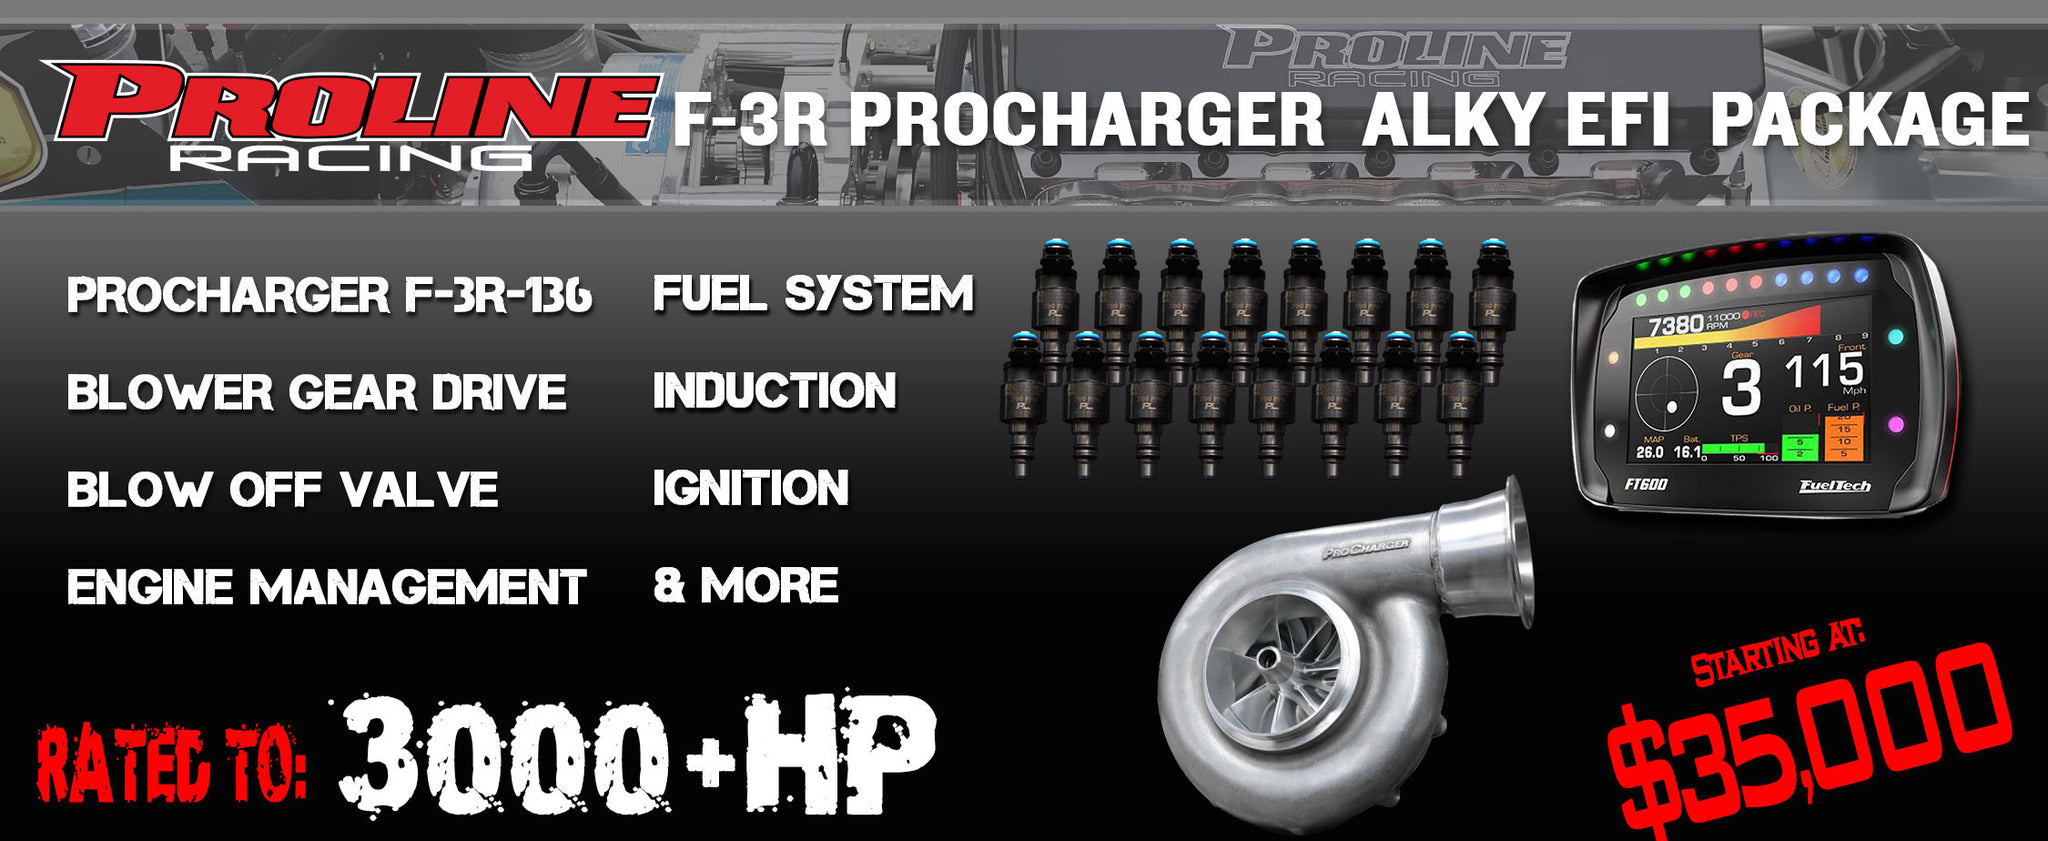 F-3R Procharger Alcohol EFI Package - Pro Line Racing